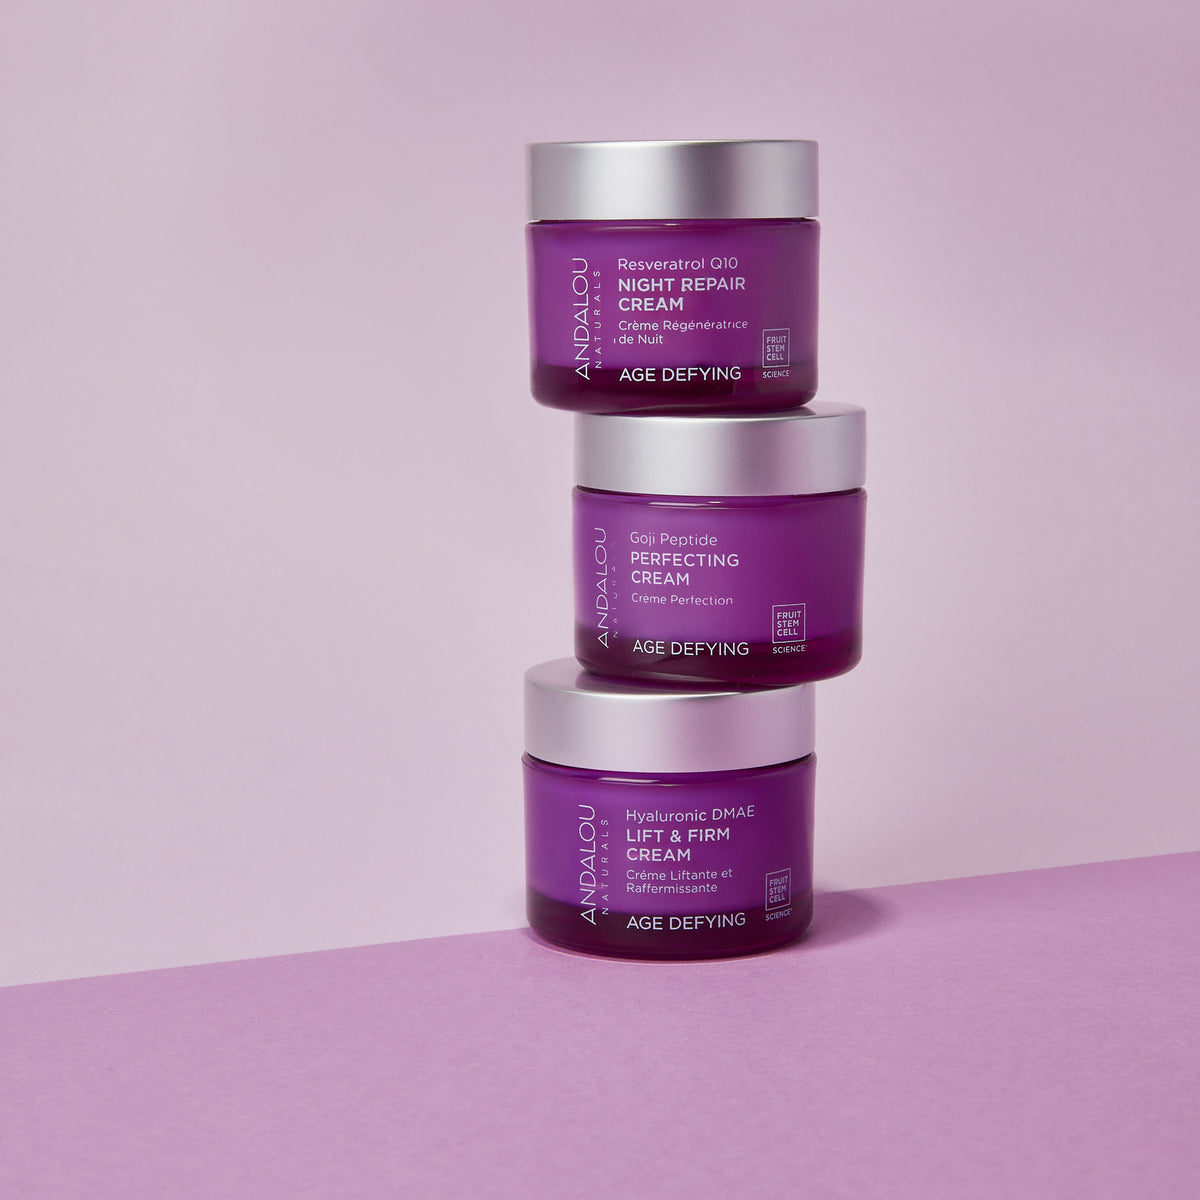 Andalou Naturals Age Defying Hyaluronic DMAE Lift & Firm Cream jars